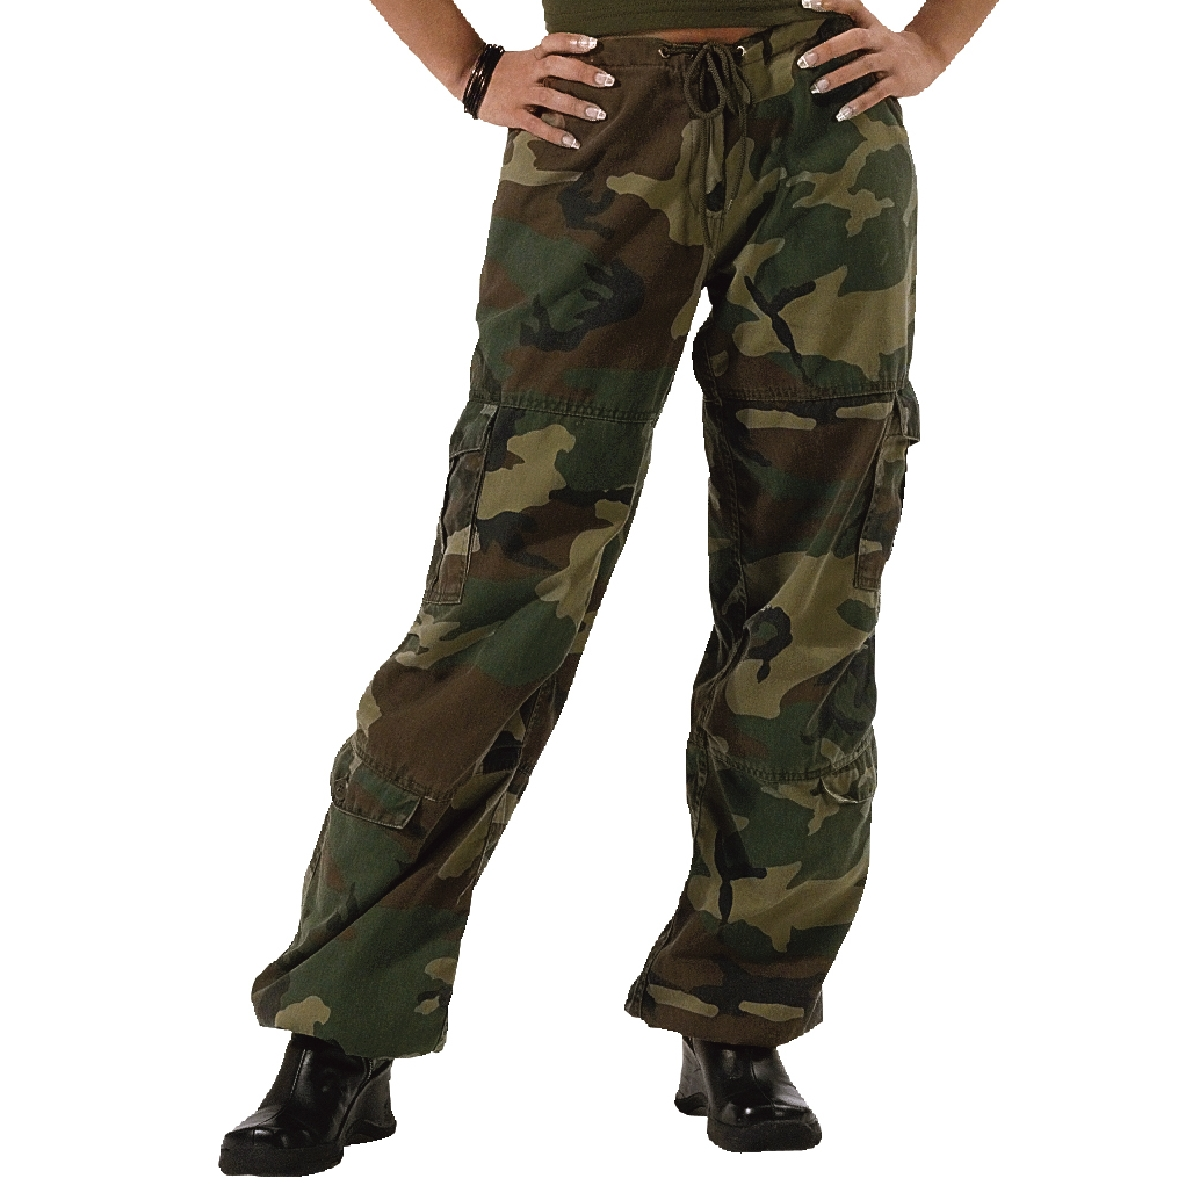 Perfect Dc Snowboard Pants Come In A Plethora Of Models With Cheetah Fast Shipping When You Order At The House Dc Mens Snowboard Pants Have The Find Great Deals On Ebay For Camo Snowboard Pants Womens  Camo Picture Collection